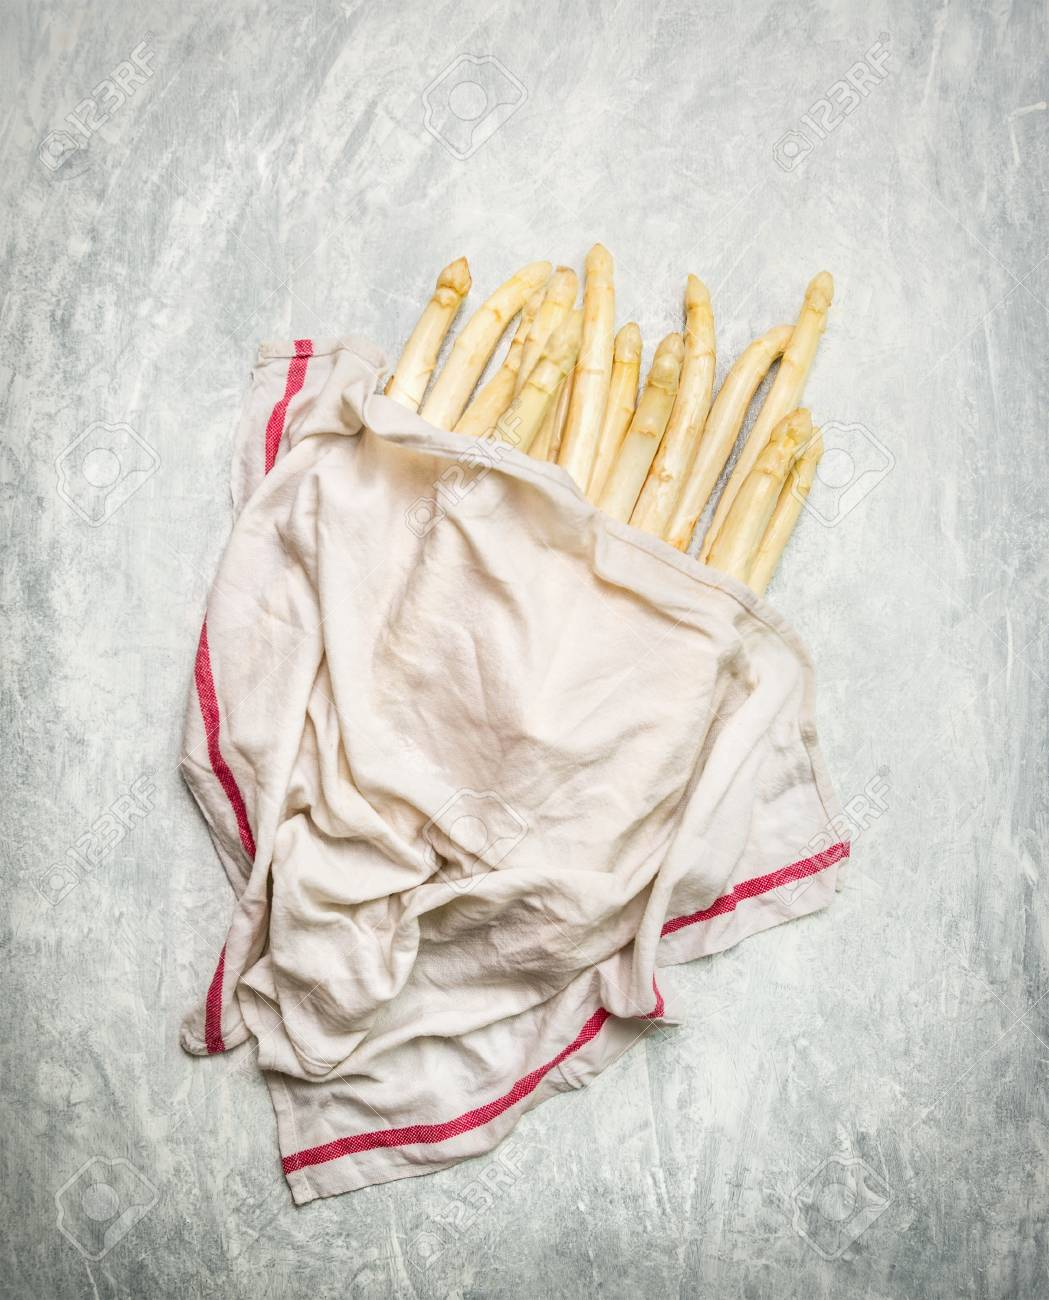 White Asparagus Under Wet Towel On Rustic Wooden Background Top